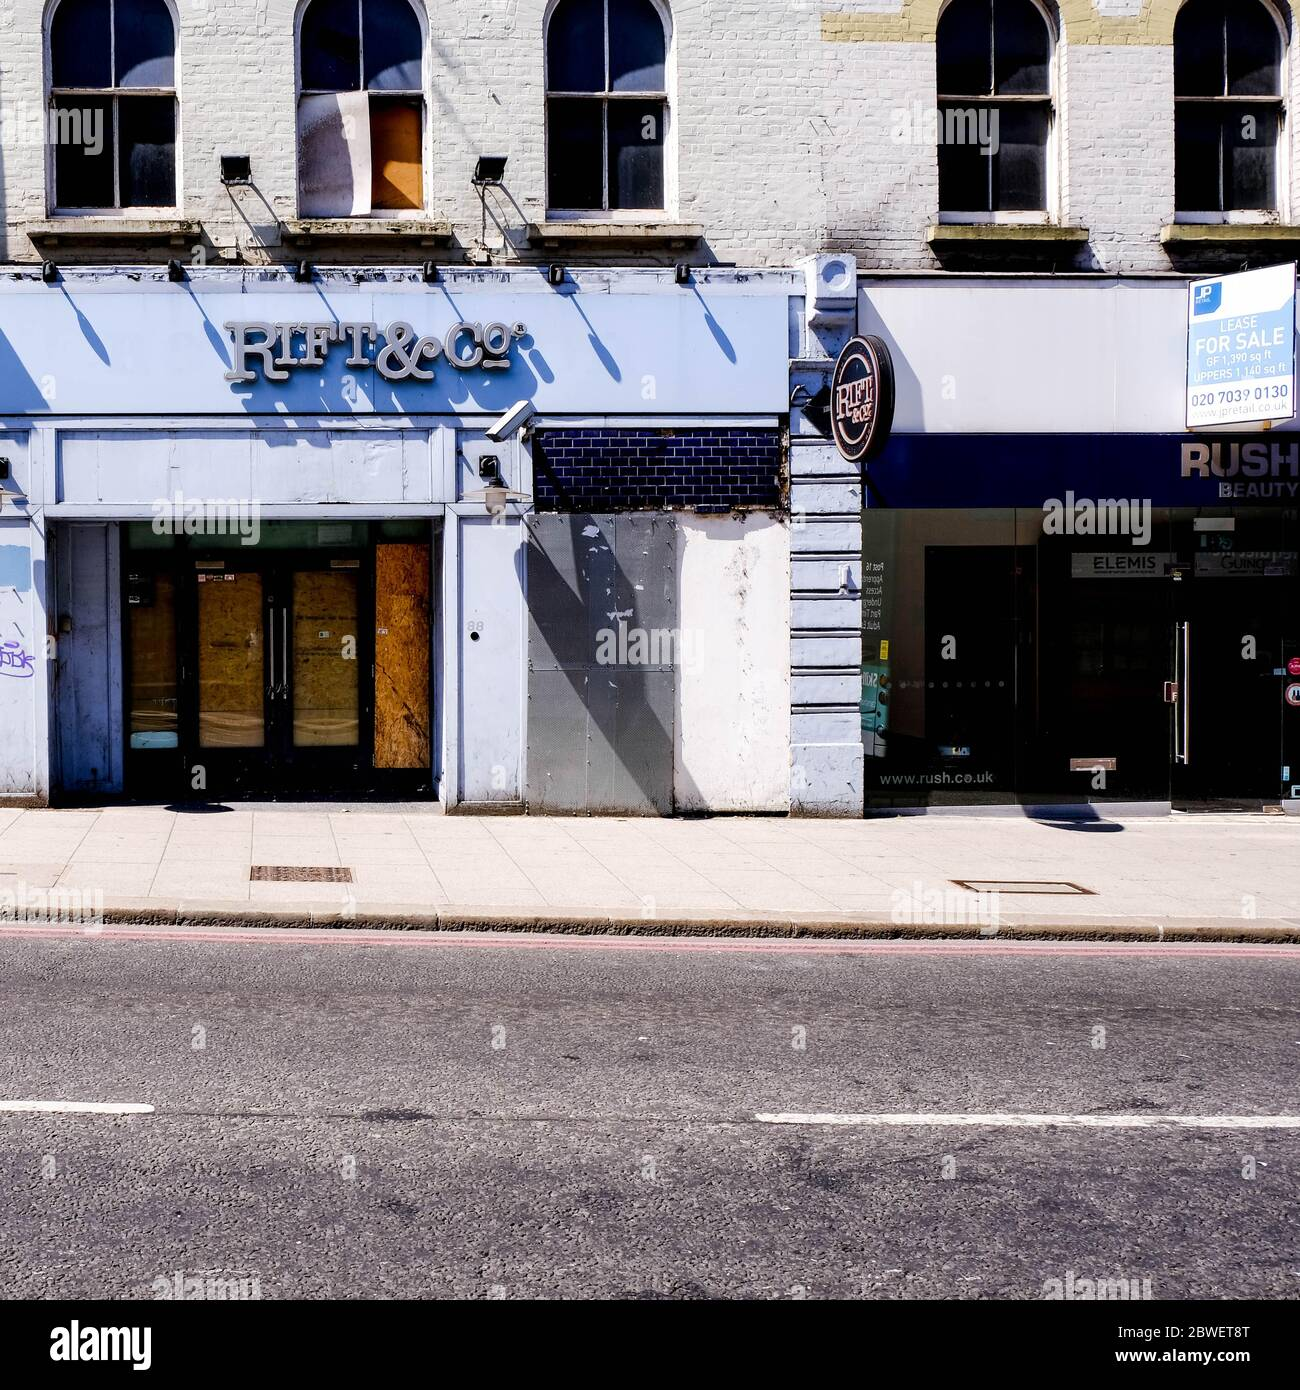 Small Independent Business Failures Increased Due To The UK Coronavirus Pandemic 2020, This closed And Boarded Up Shop Typical Stock Photo